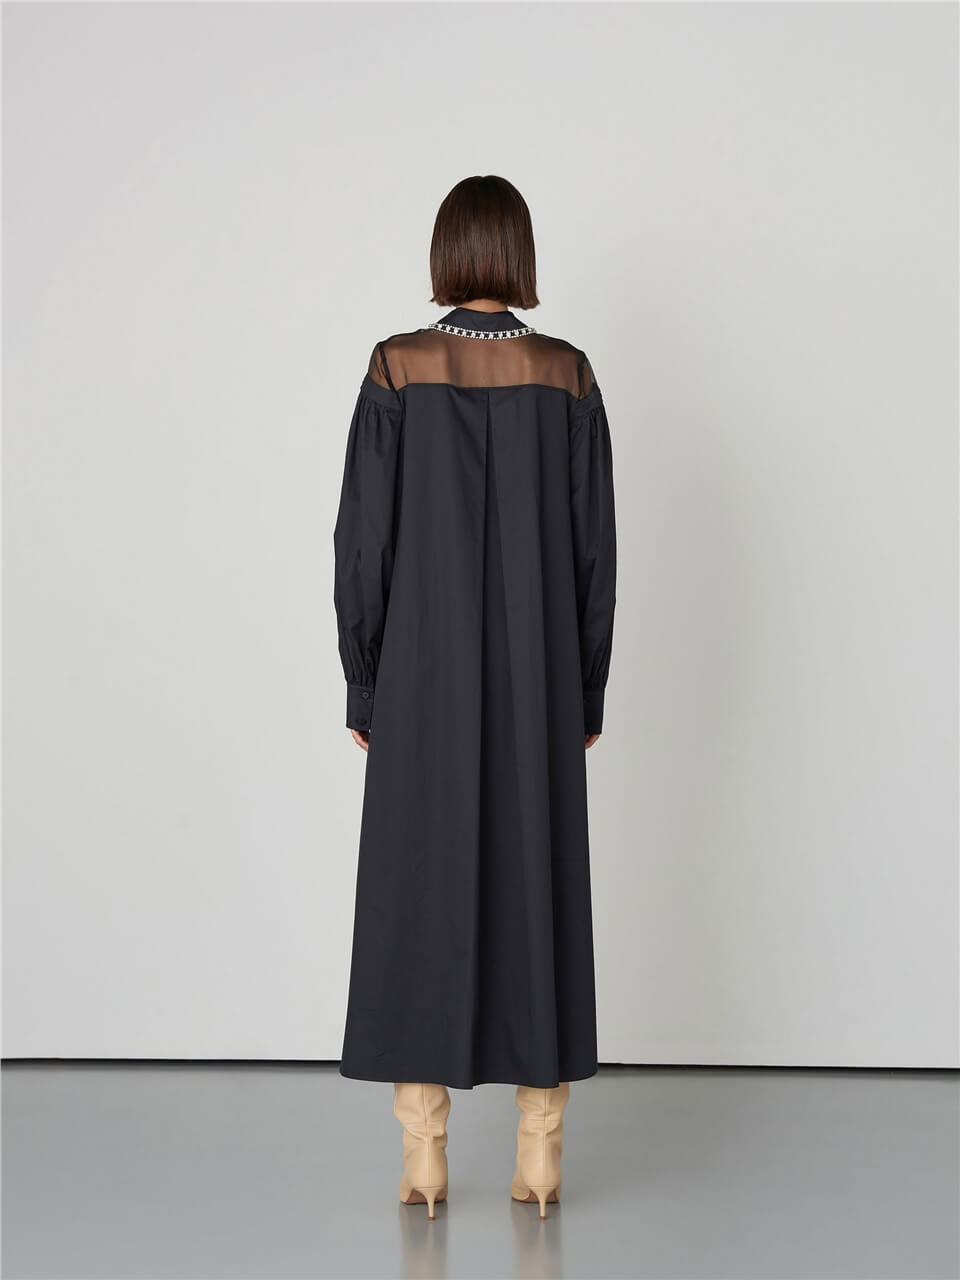 MARKABlouse{}Black Shirt DressQW2144074